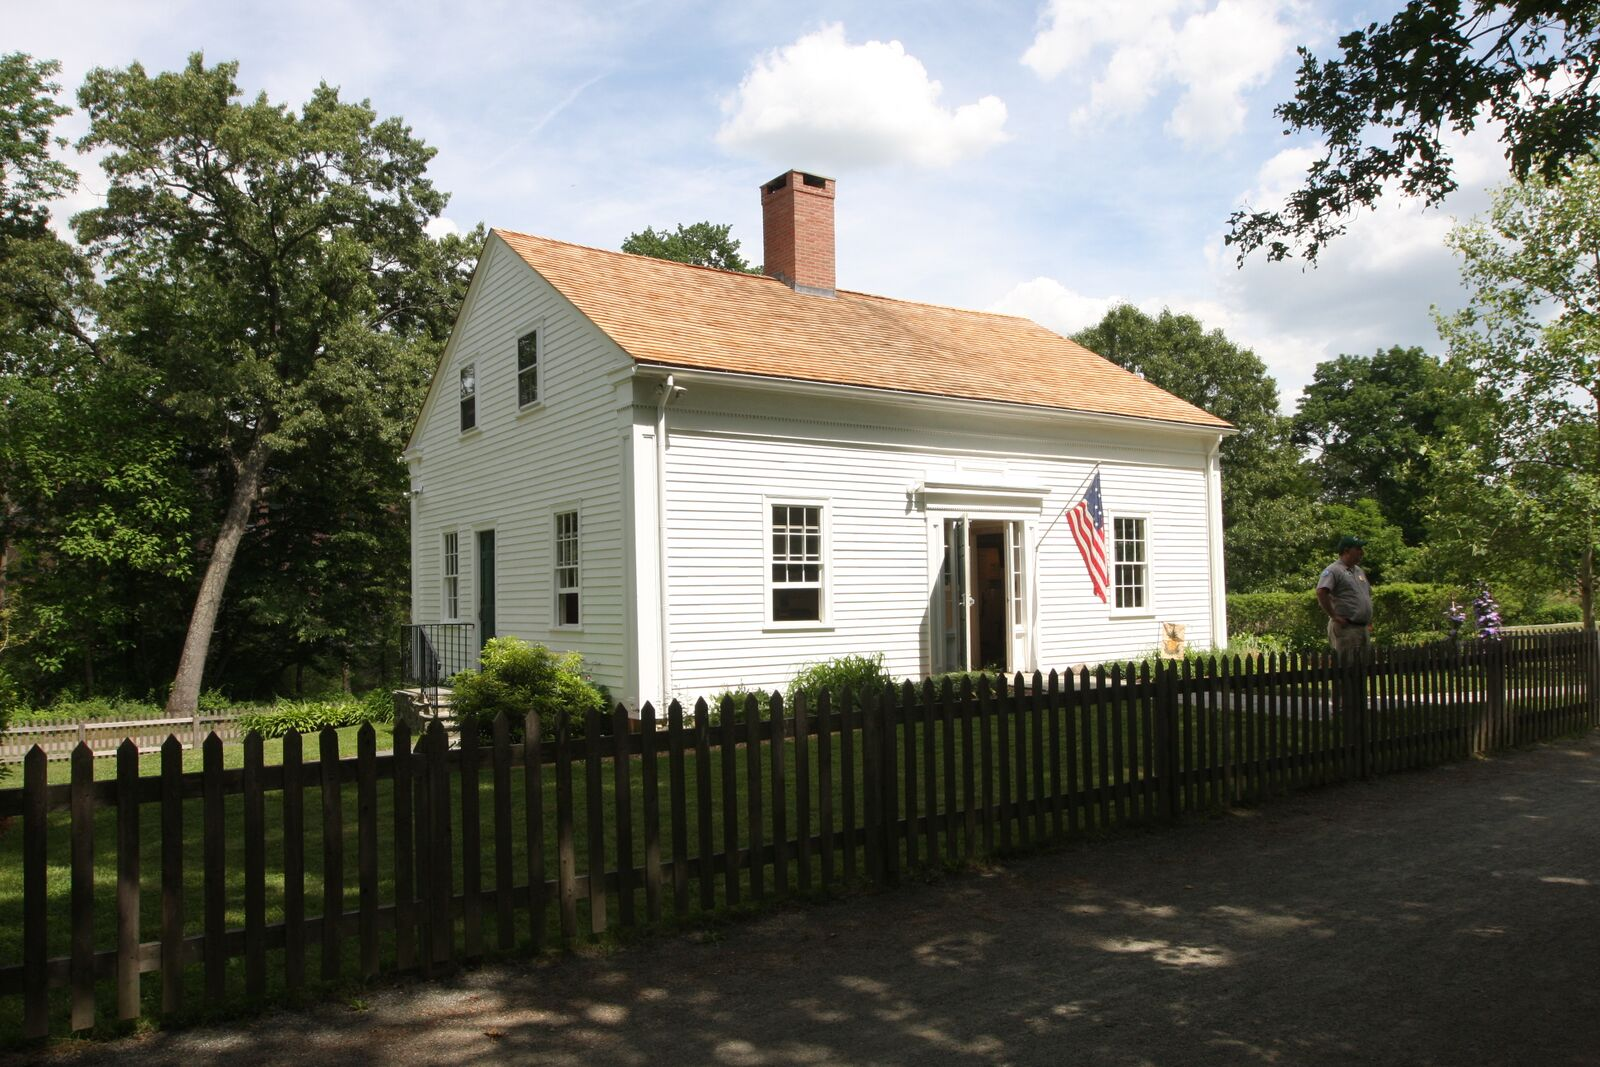 The historic Kelly House is where all of the transportation stories of the Blackstone River Valley come together.